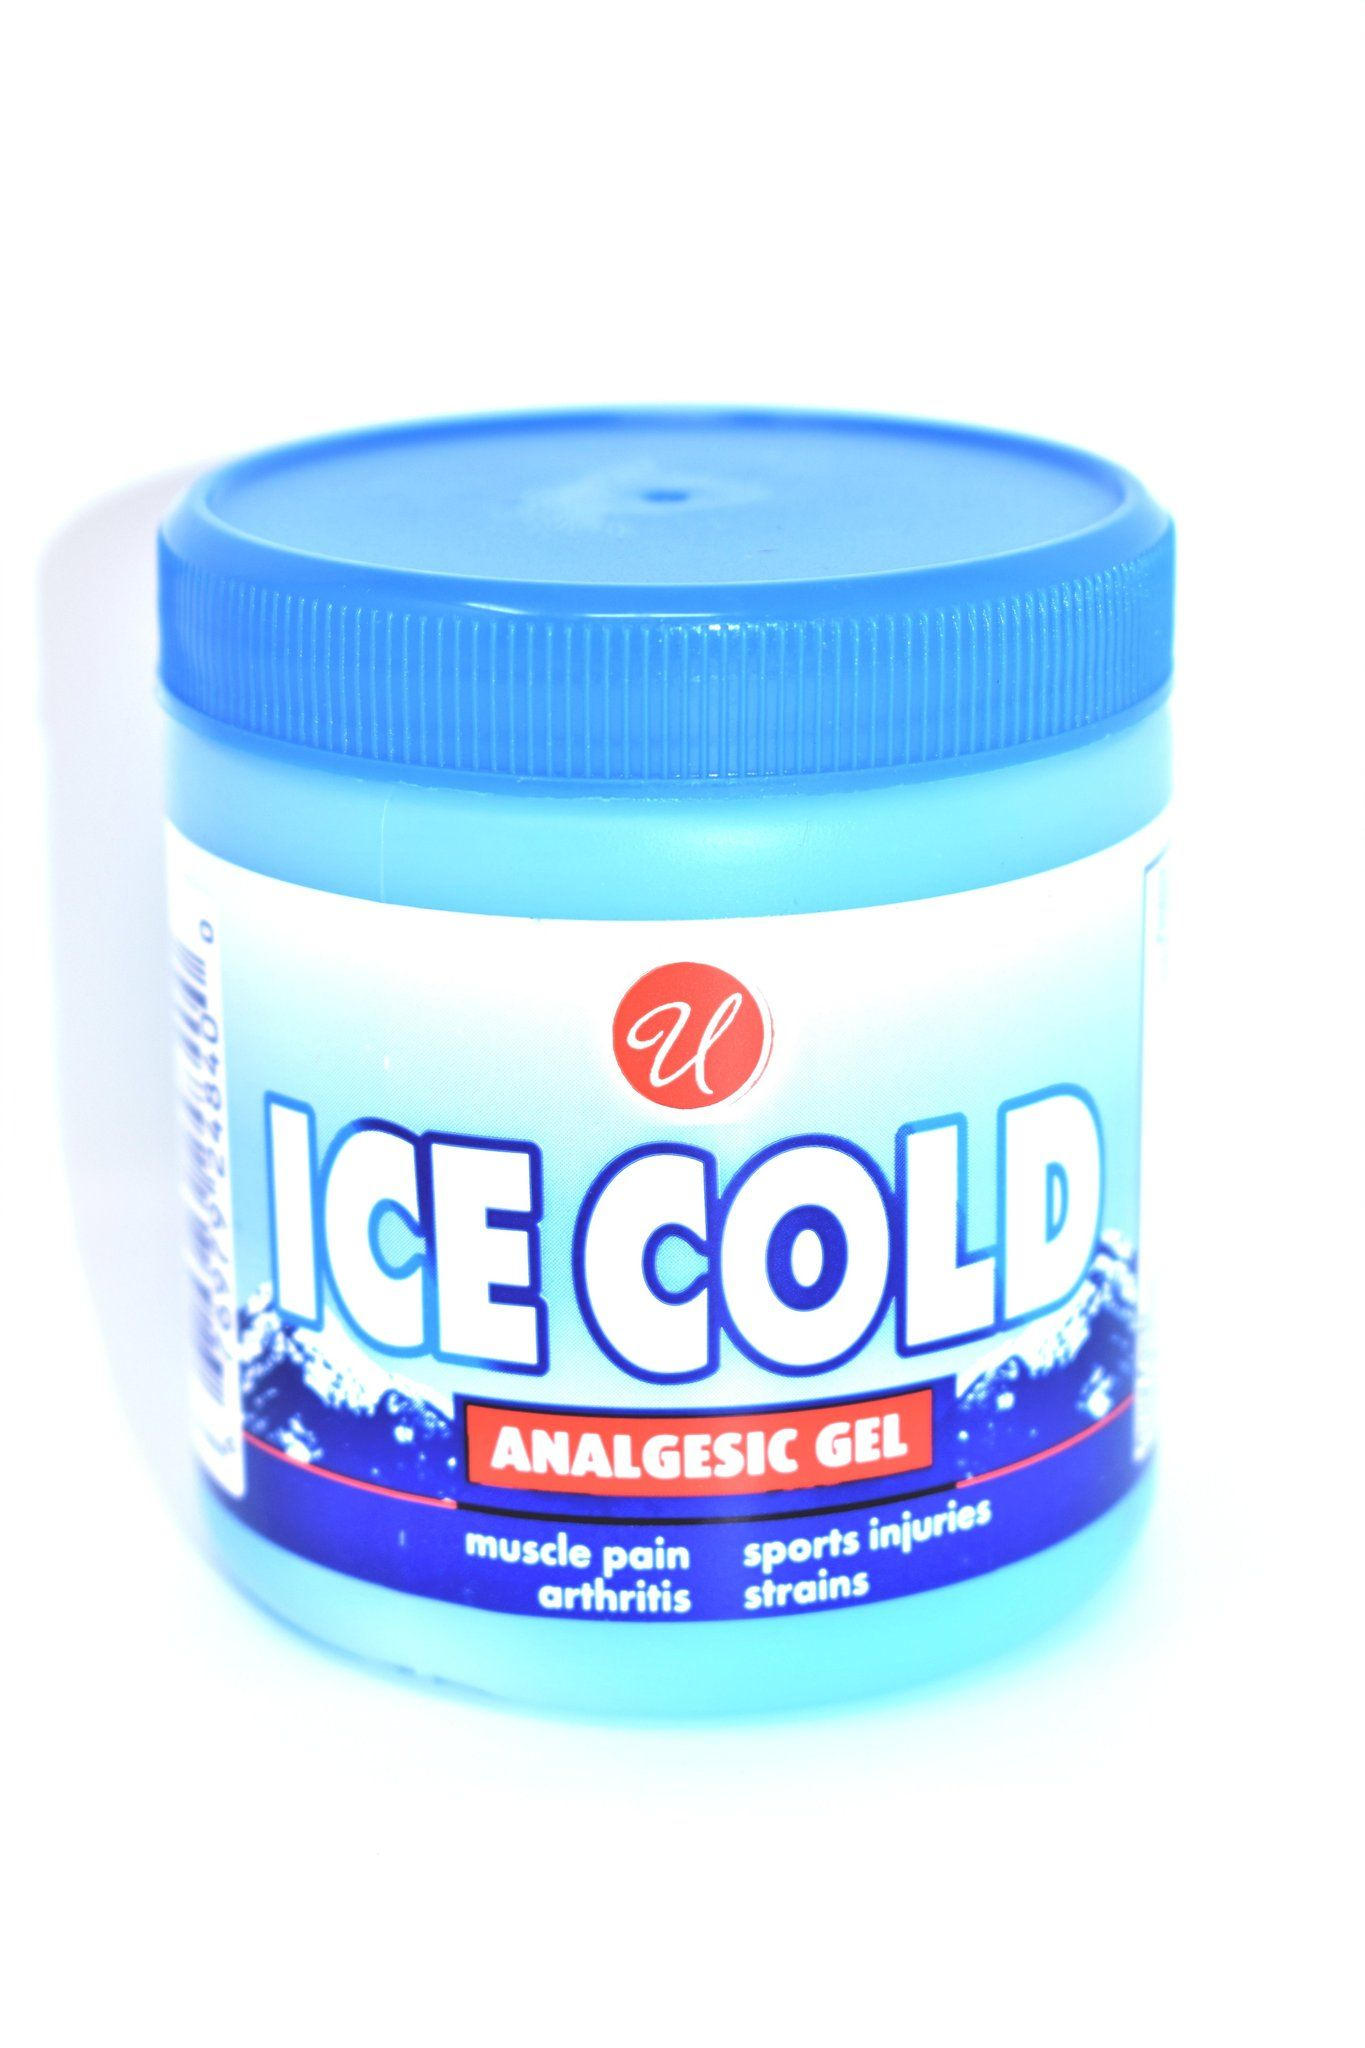 Universal Ice Cold Analgesic Gel, 8 oz (With images) Gel